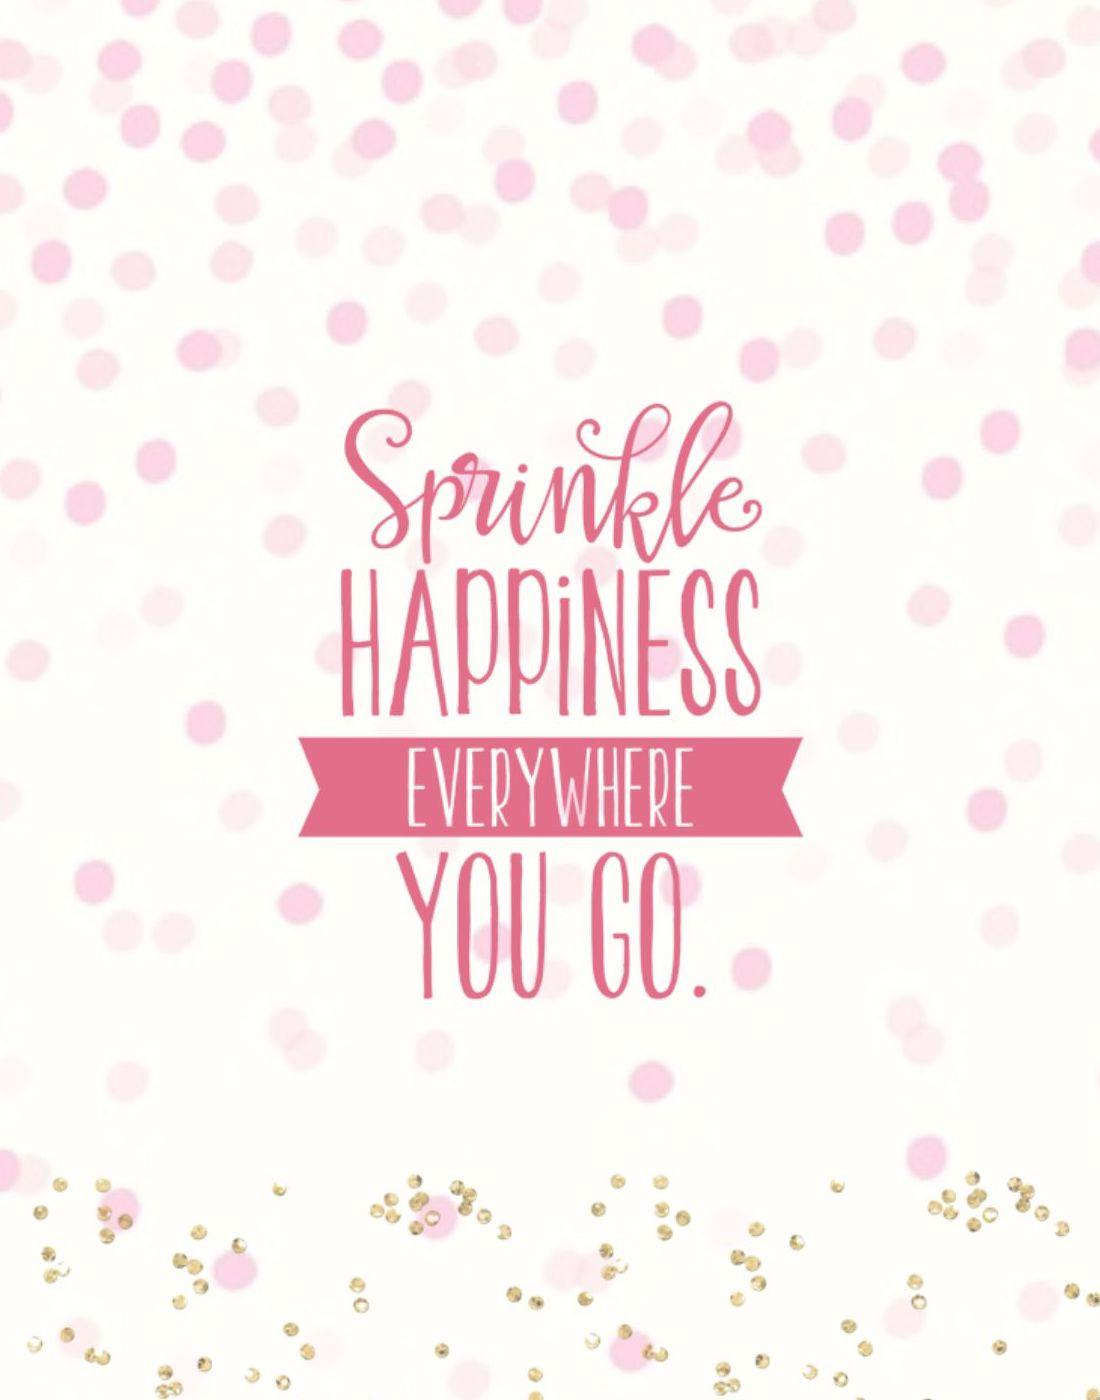 Sprinkle Happiness